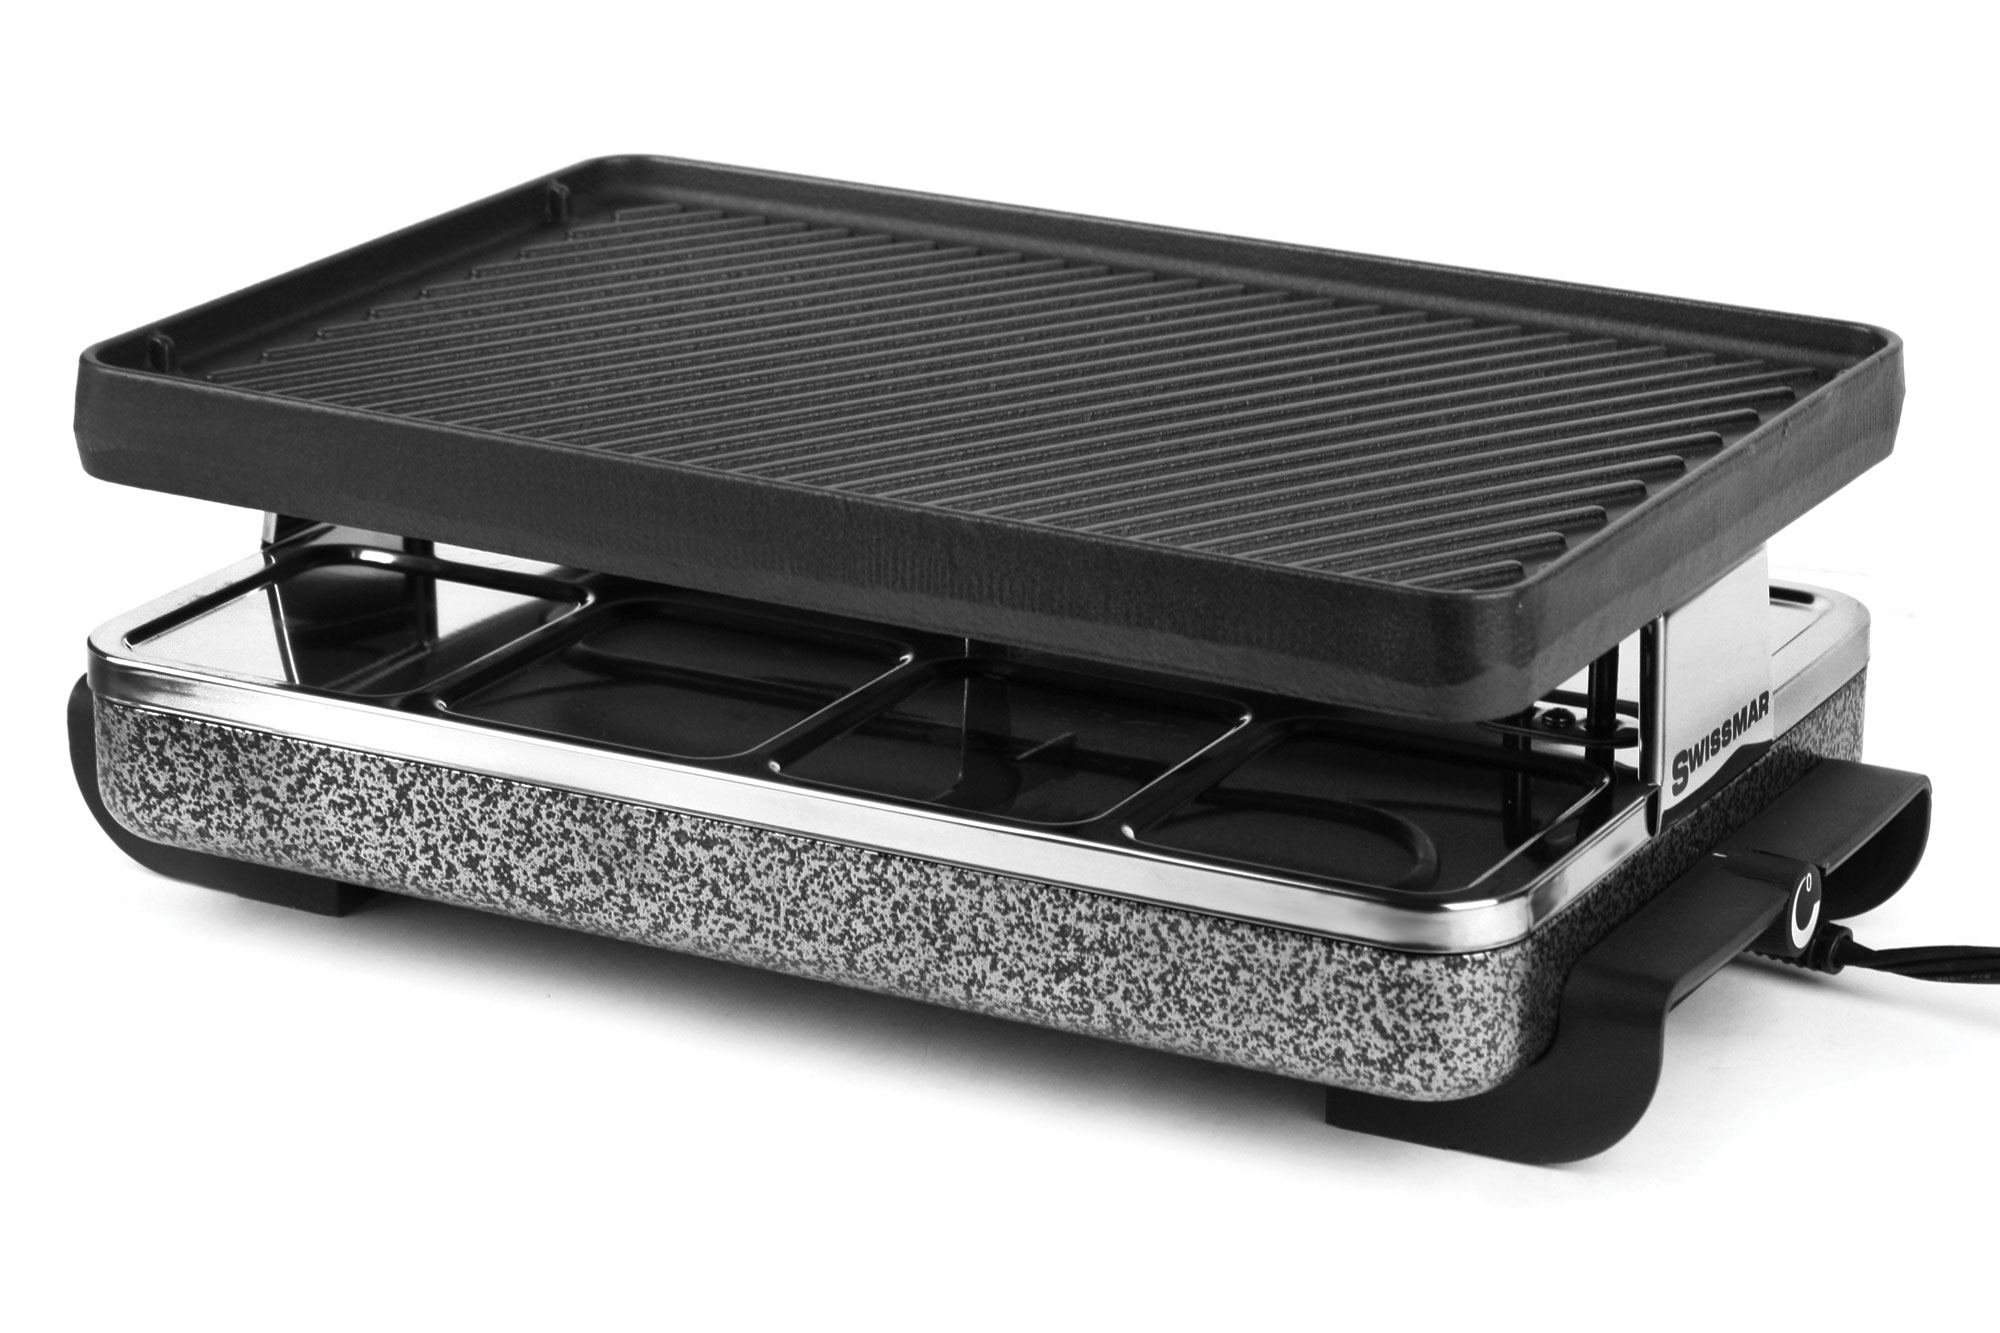 Swissmar Eiger Raclette Grill With Reversible Cast Iron